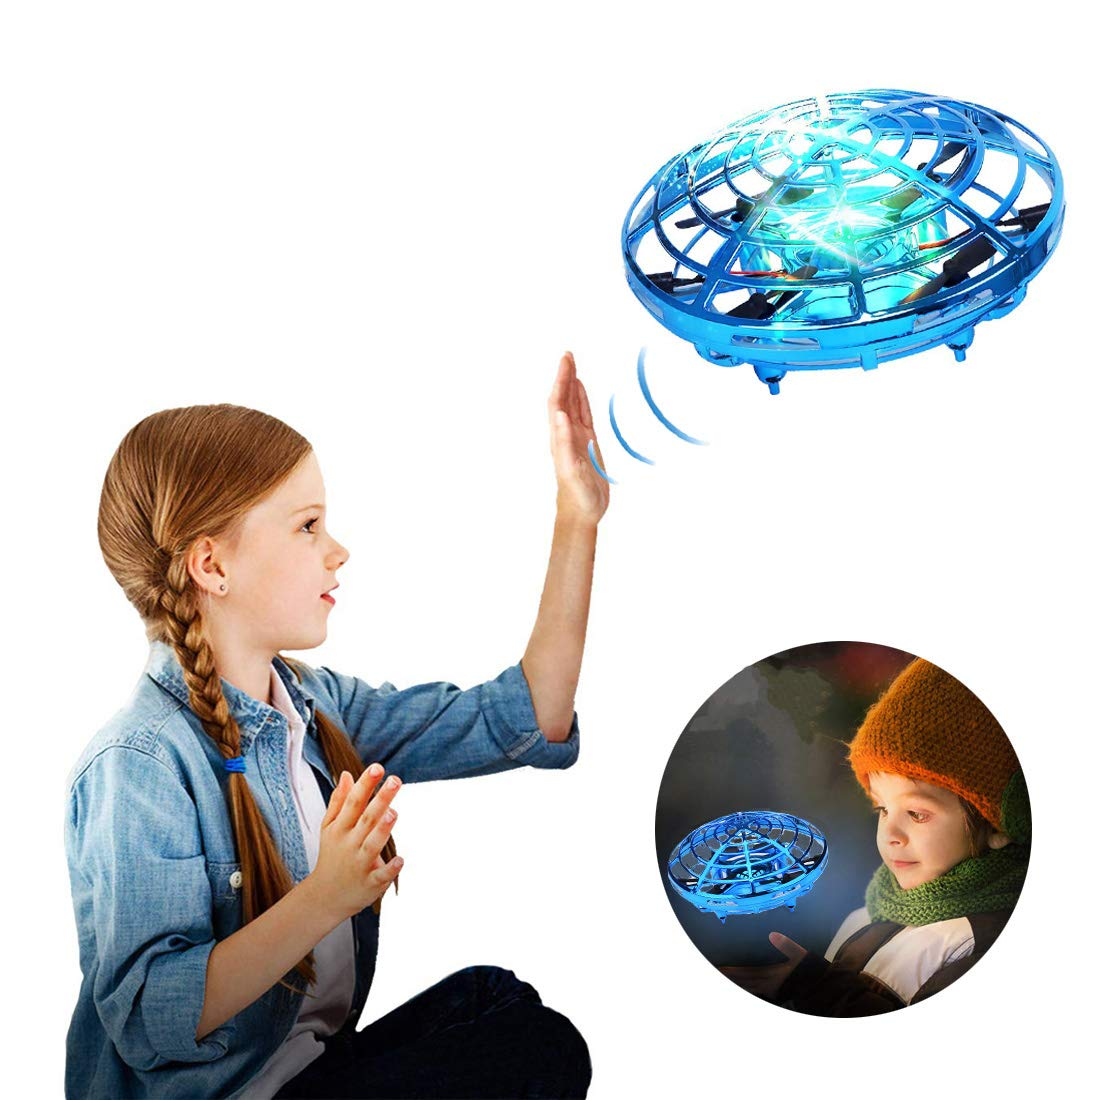 Hand Operated Drones for Kids or Adult, Mini Drone Flying Ball Toy, Scoot UFO Hand Free Infrared Sensing Drone Toys for Boys and Girls Holiday and Birthday Gifts by Nice Dream